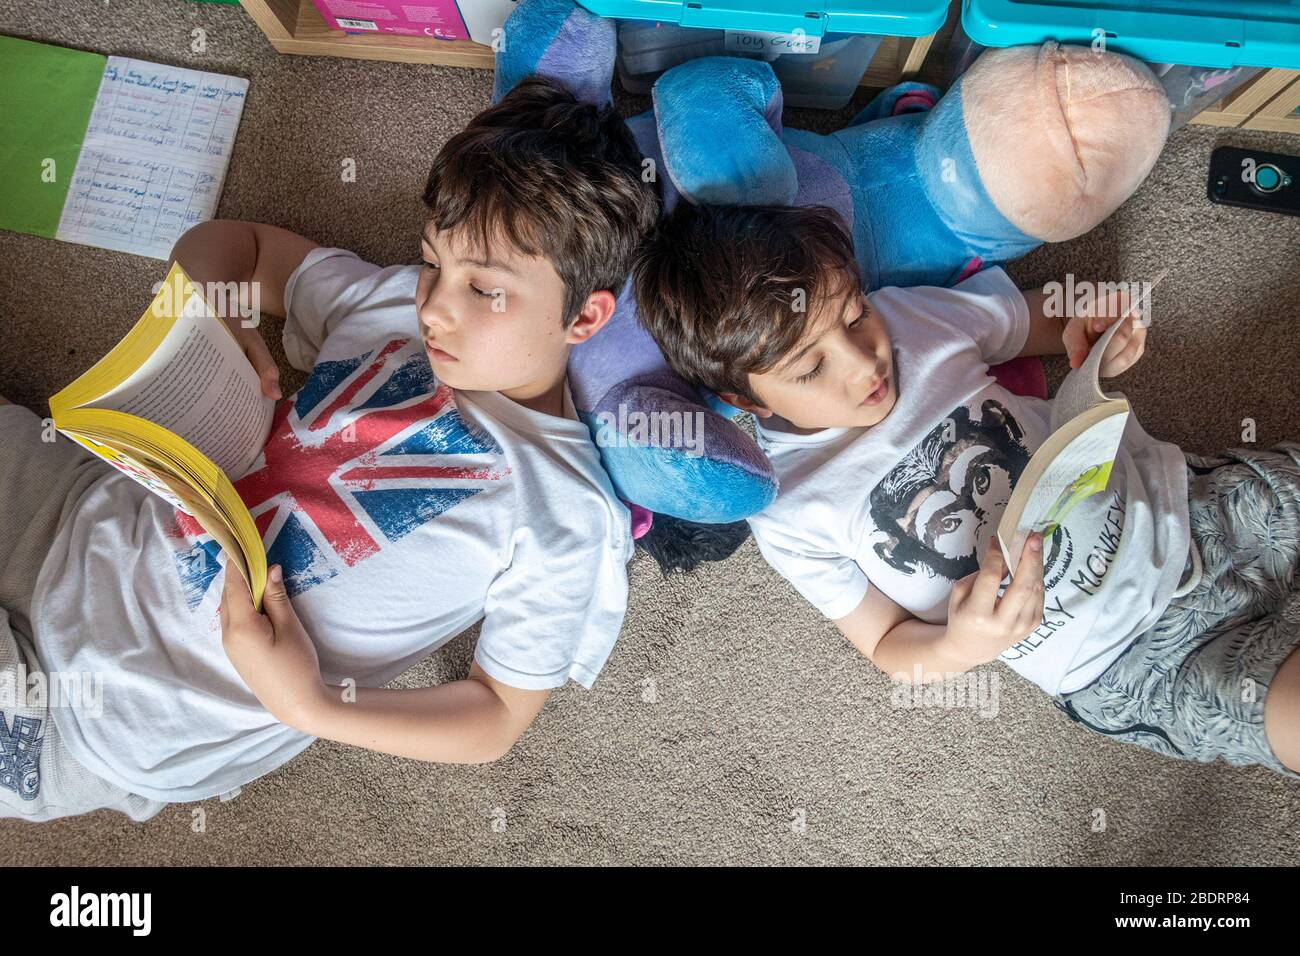 young-brothers-lie-on-the-floor-together-reading-their-books-this-is-during-the-coronavirus-pandemic-and-reading-id-a-good-educational-activity-2BDRP84.jpg